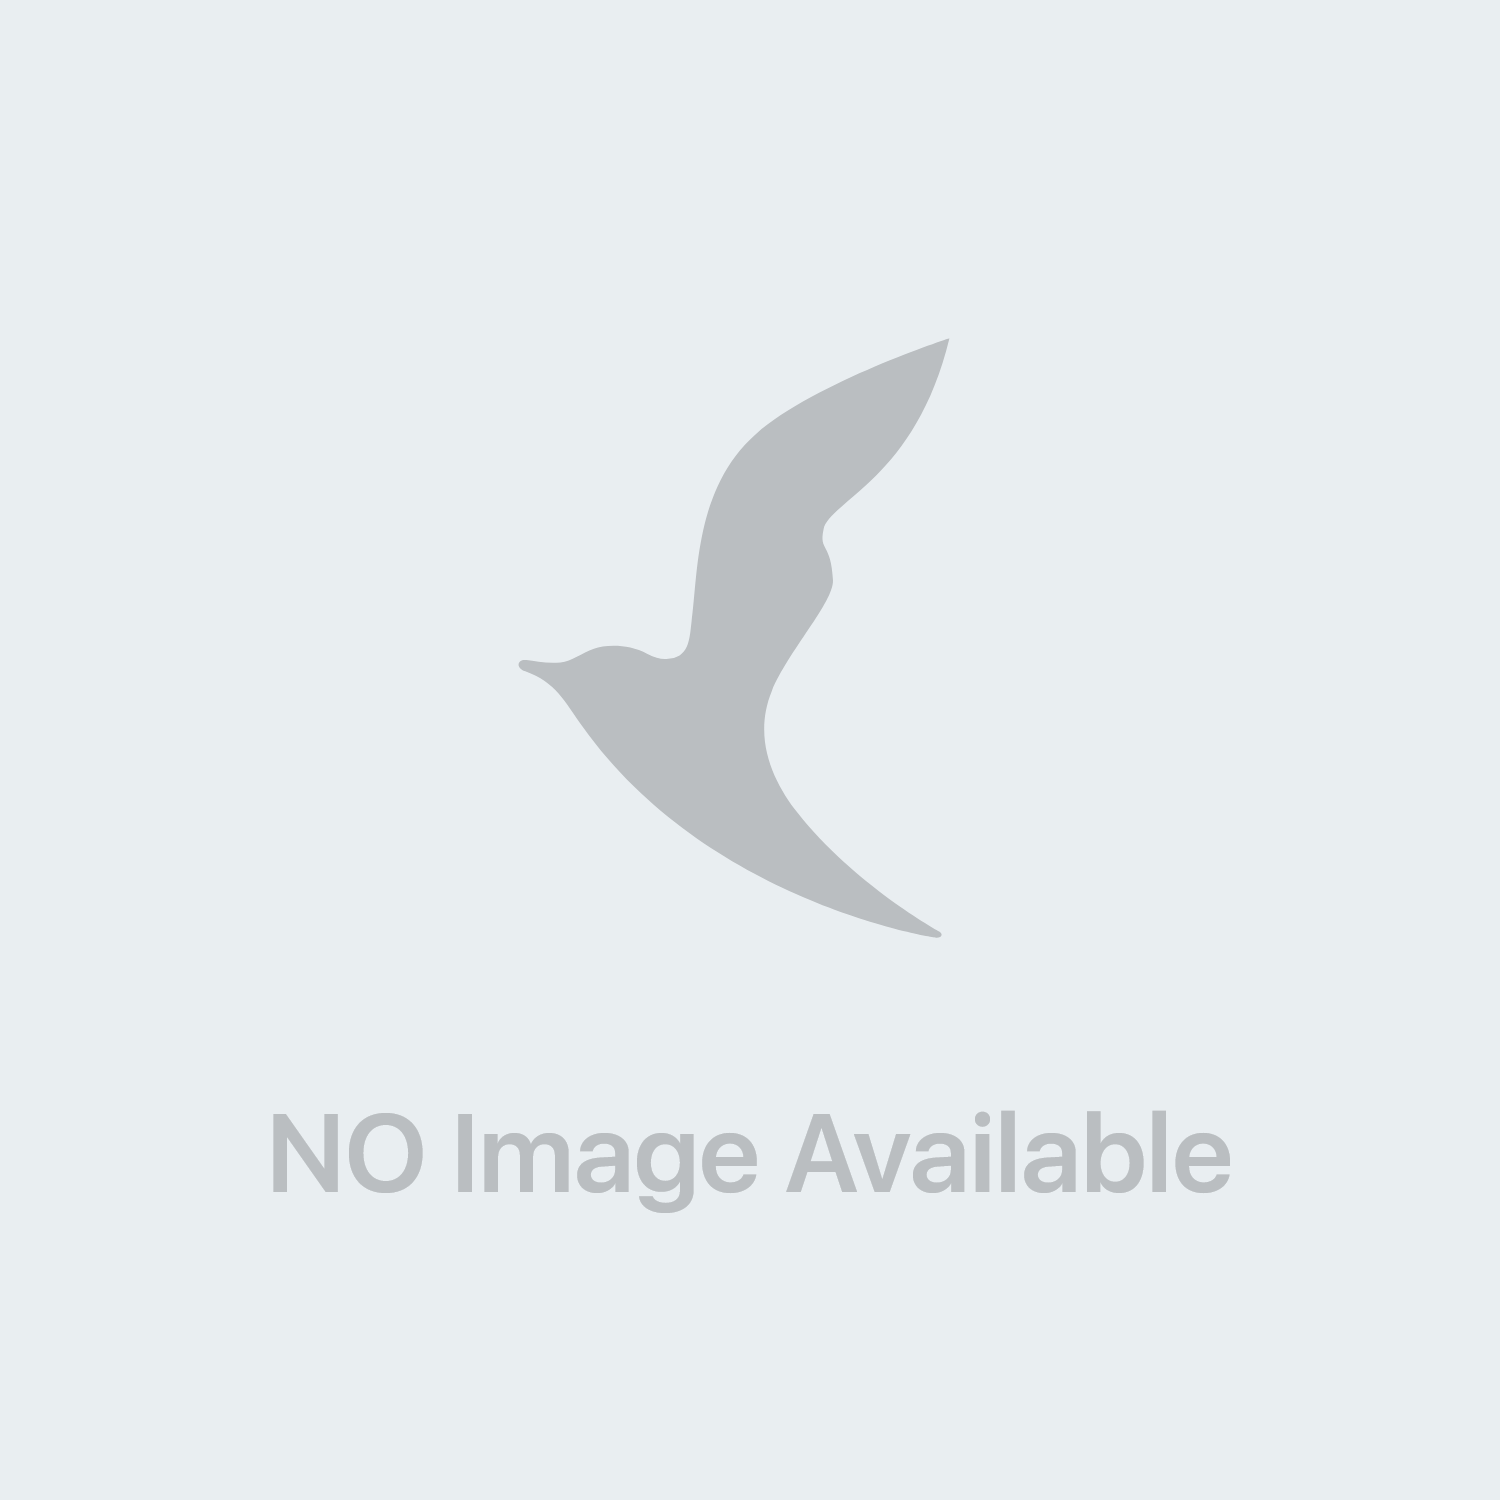 Ibuprofene Sandoz 24 Compresse Rivestite 200 mg